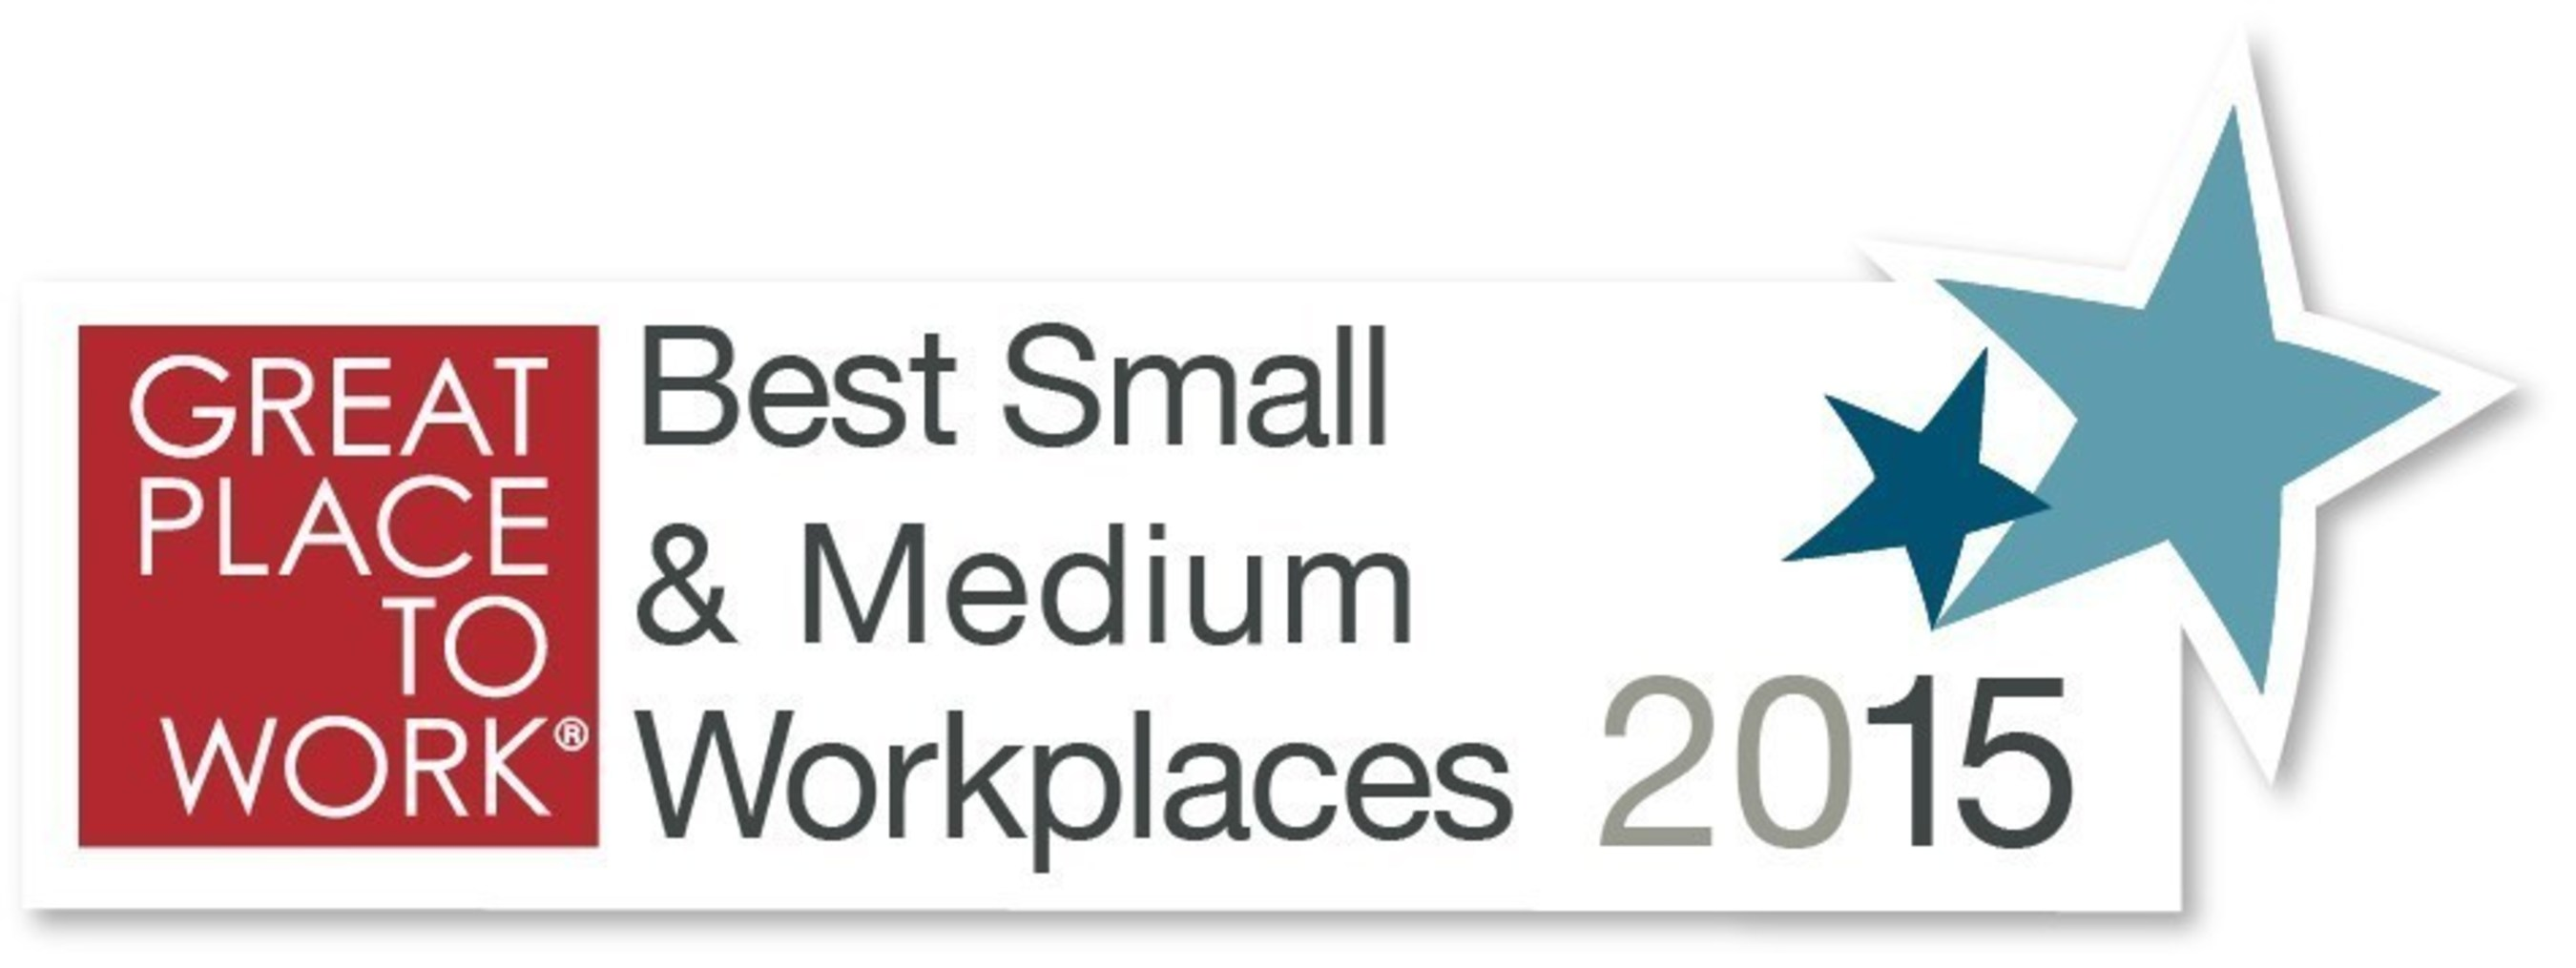 Yext Named to Great Place to Work' 2015 Best Small & Medium Workplaces List